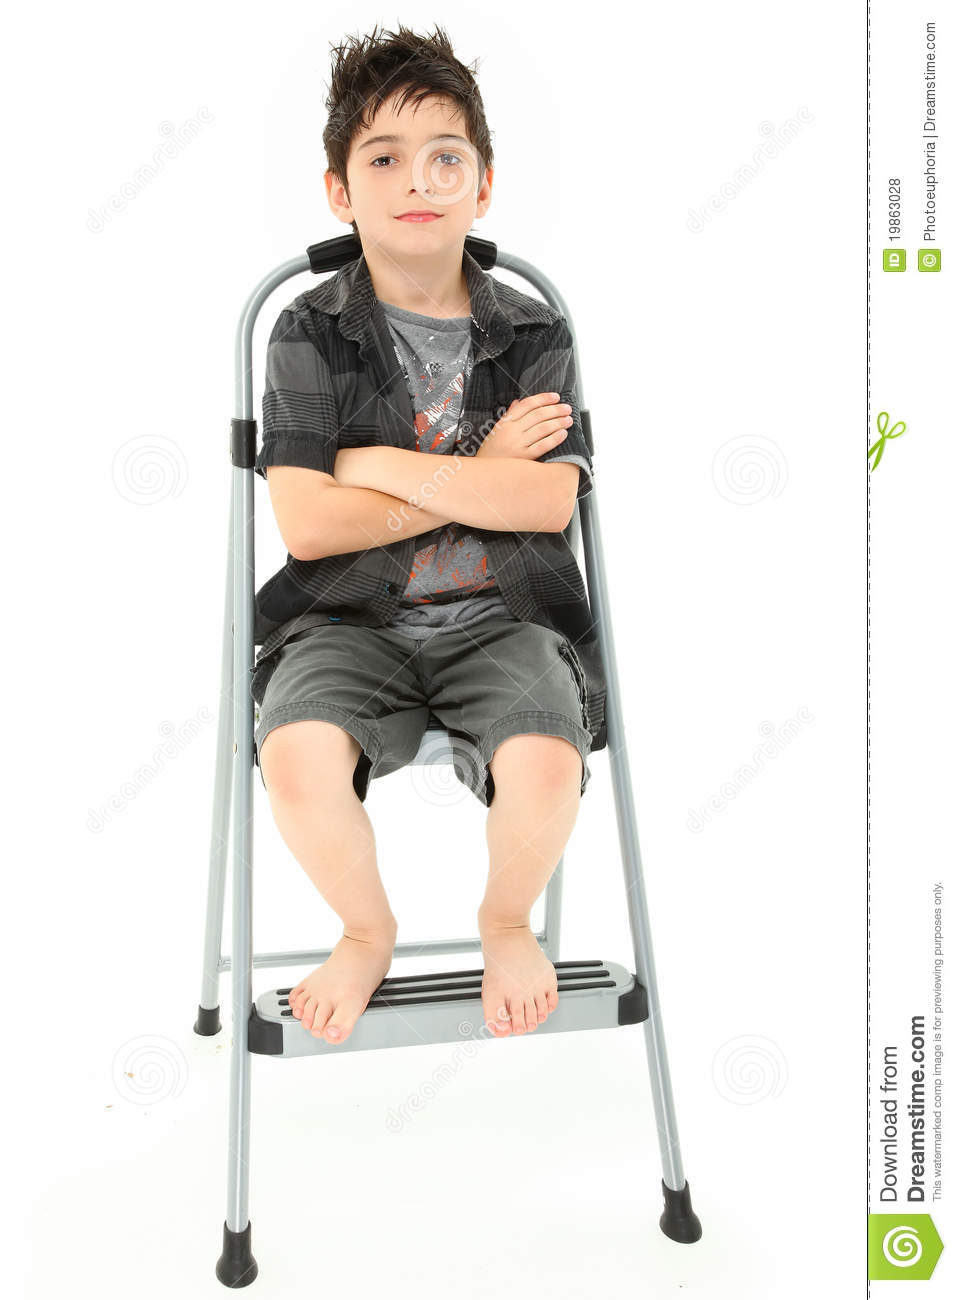 Child Sitting On Step Ladder Arms Crossed Royalty Free